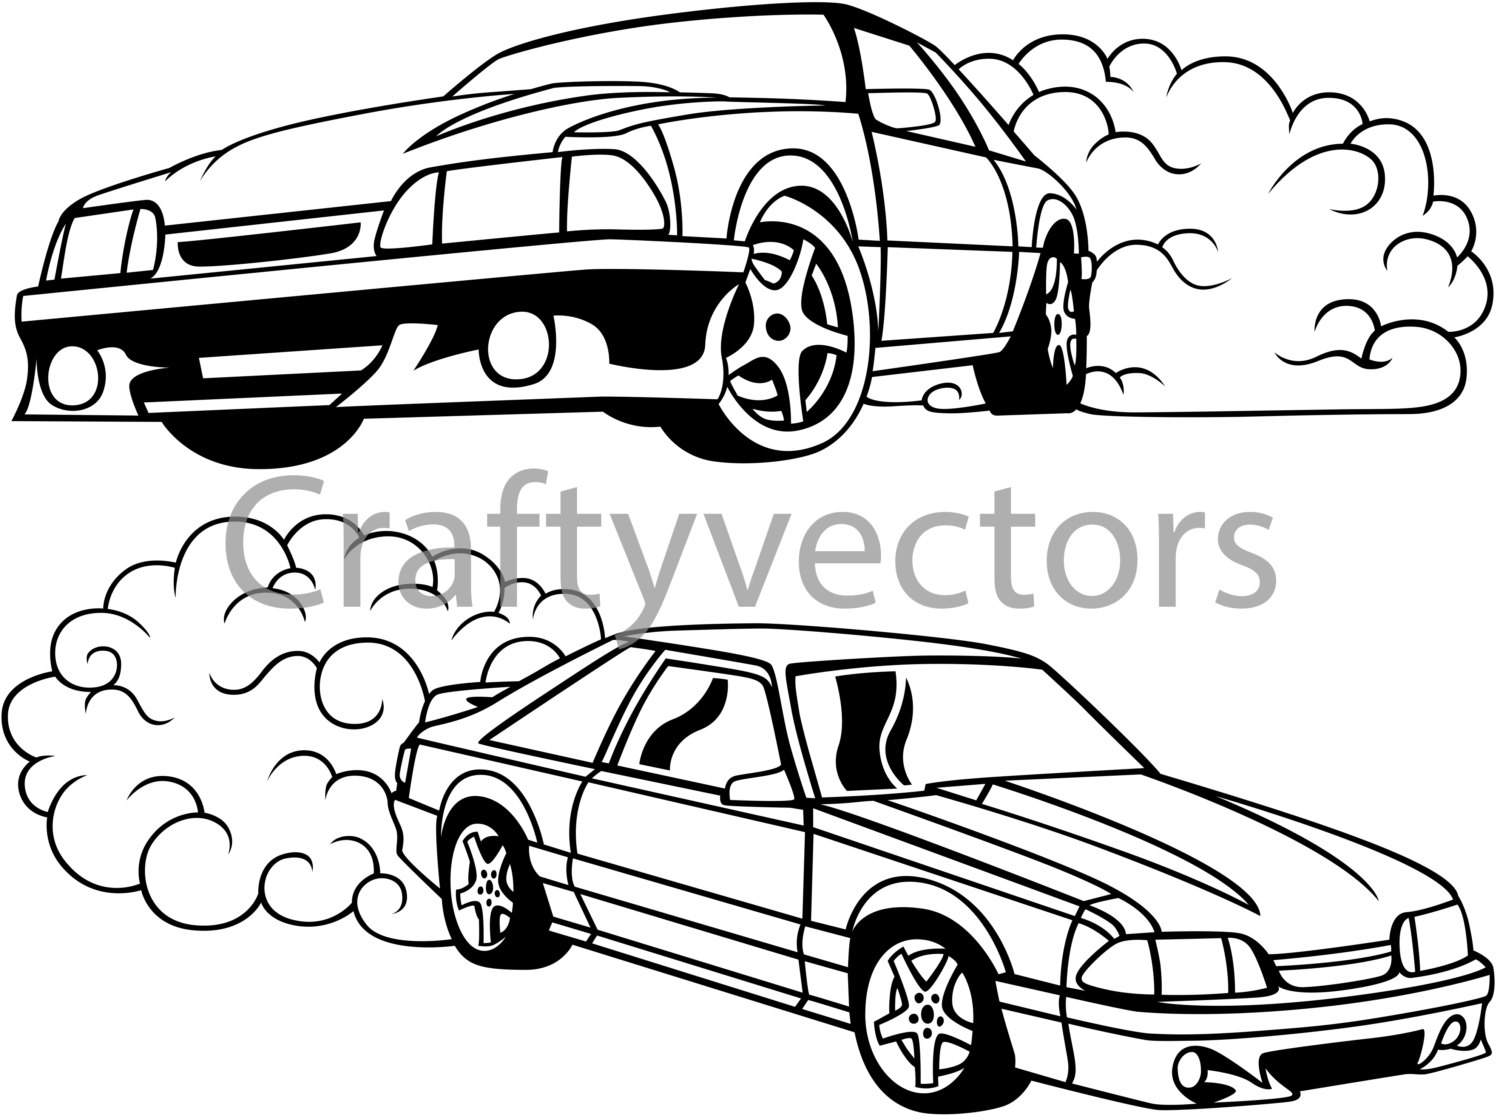 1500x1116 Ford Mustang Outline. Best Ford Mustang Roadster Sports Car Racing